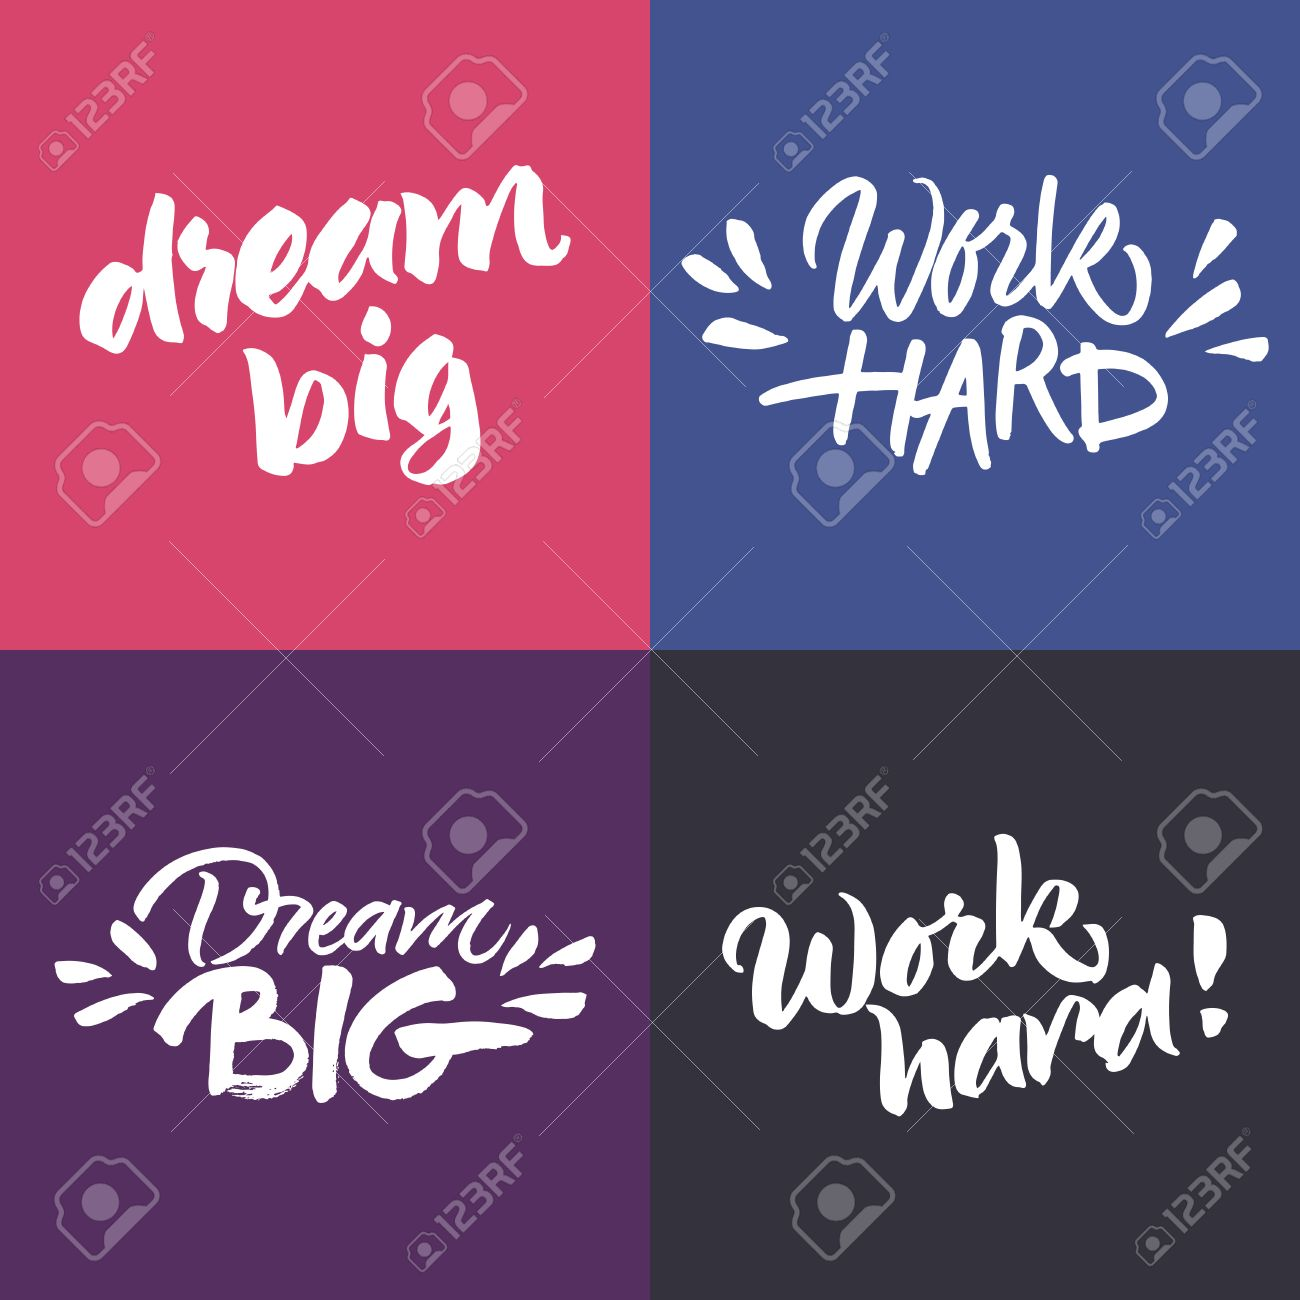 Motivational Phrases Set Of Inspirational And Motivational Quotes 'dream Big' And